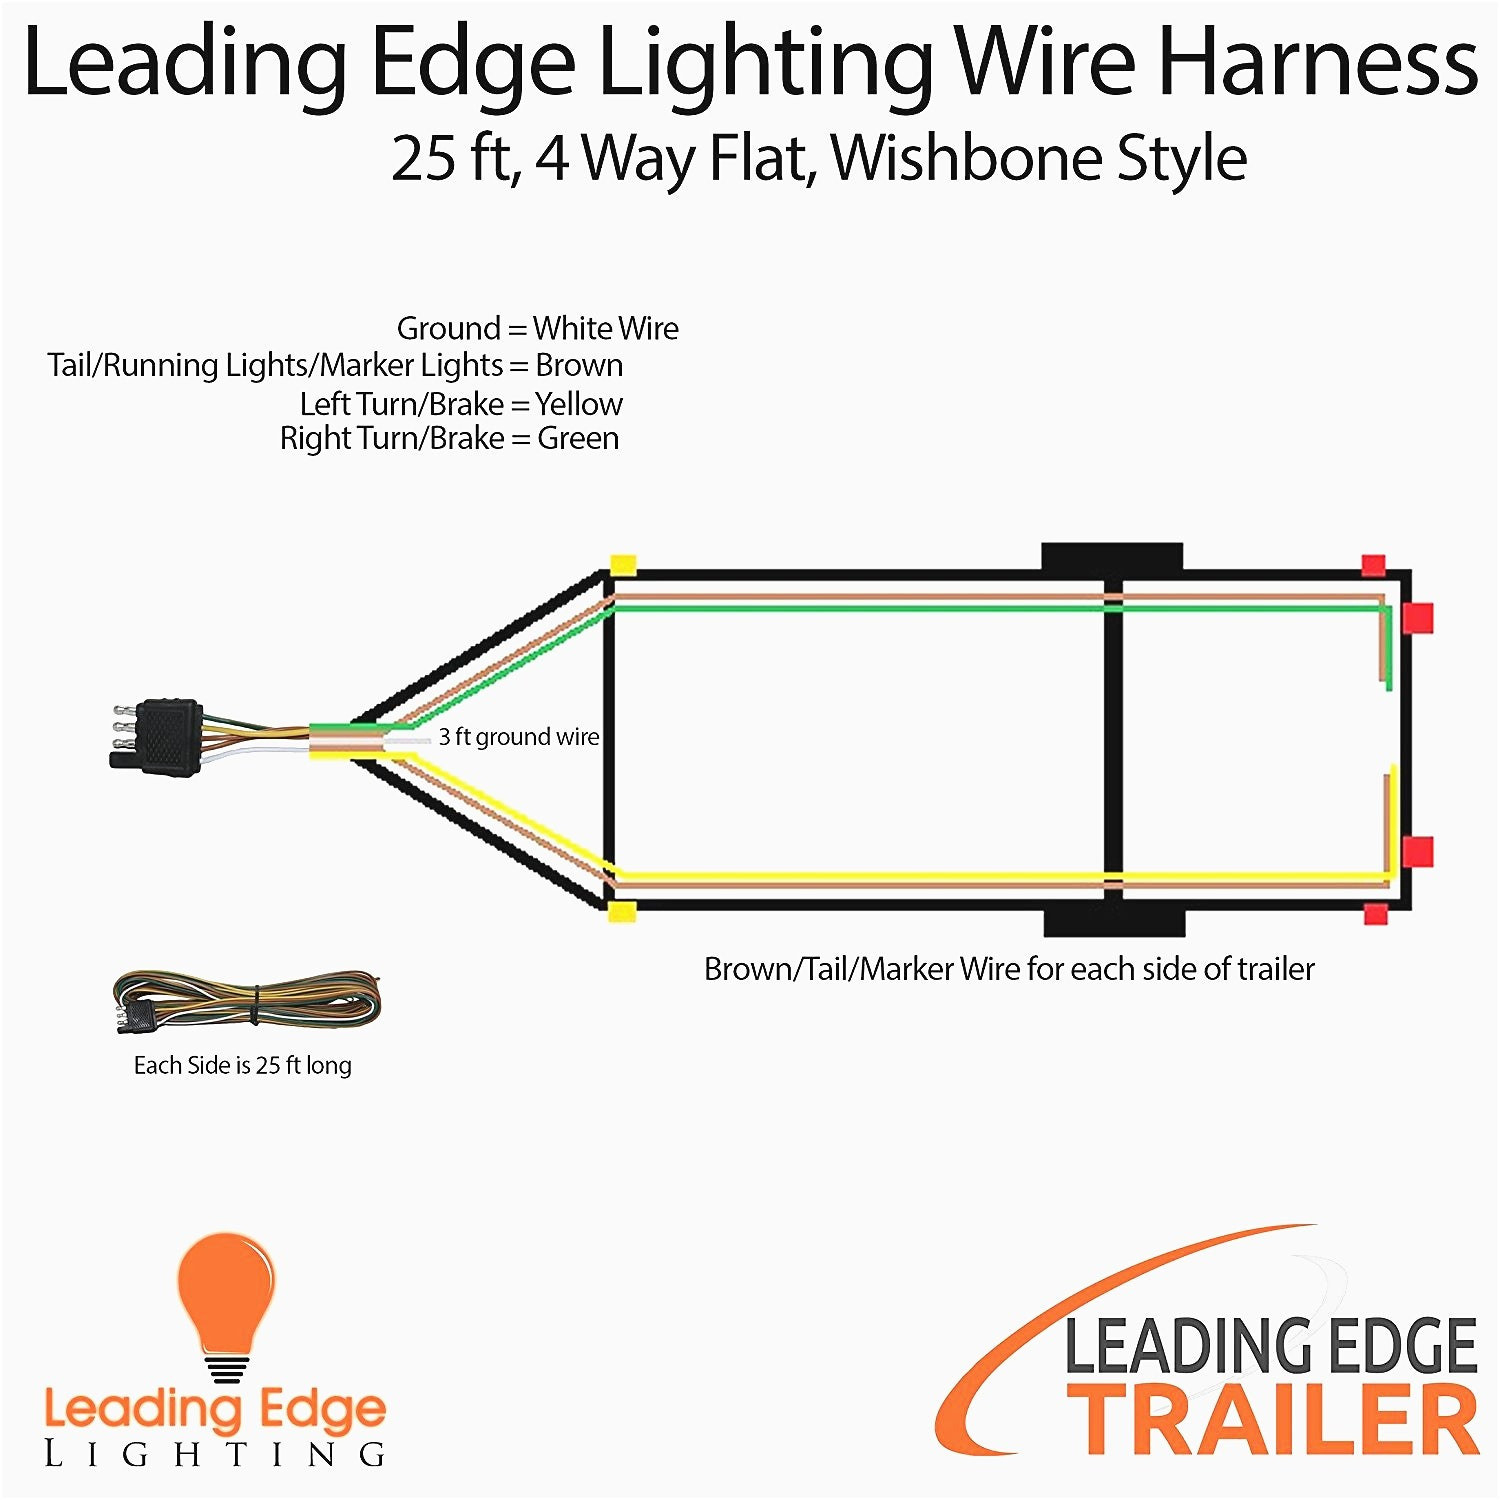 How To Wire Trailer Lights 4 Way Diagram Simple 4 Way Trailer Plug - Trailer Light Wiring Diagram 4 Way